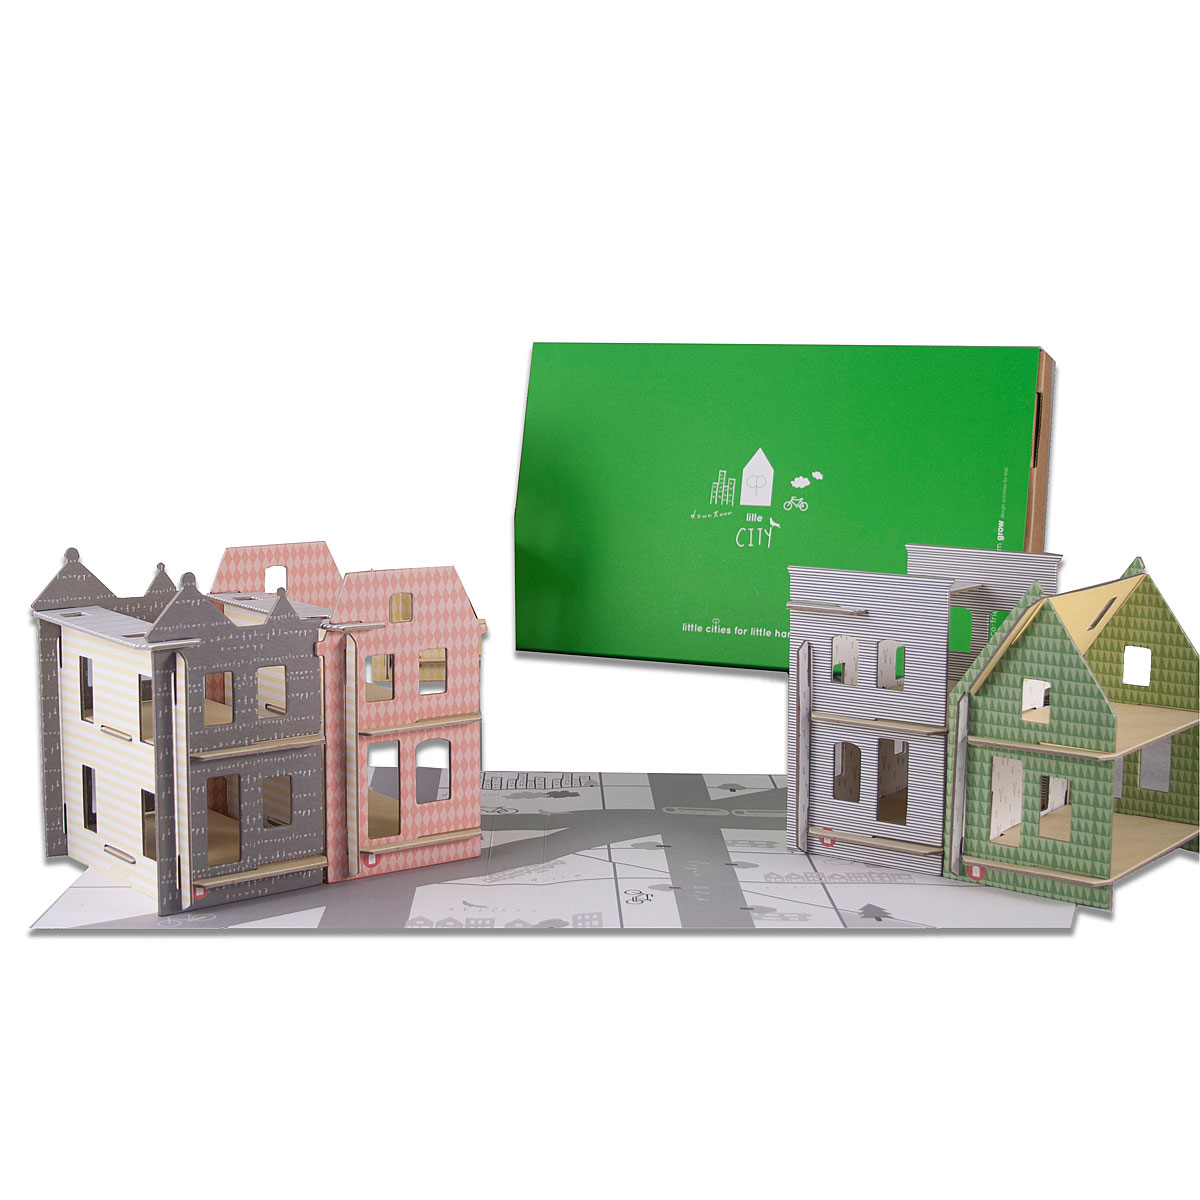 BUILD YOUR OWN CITY  Cardboard Dollhouse Set  UncommonGoods